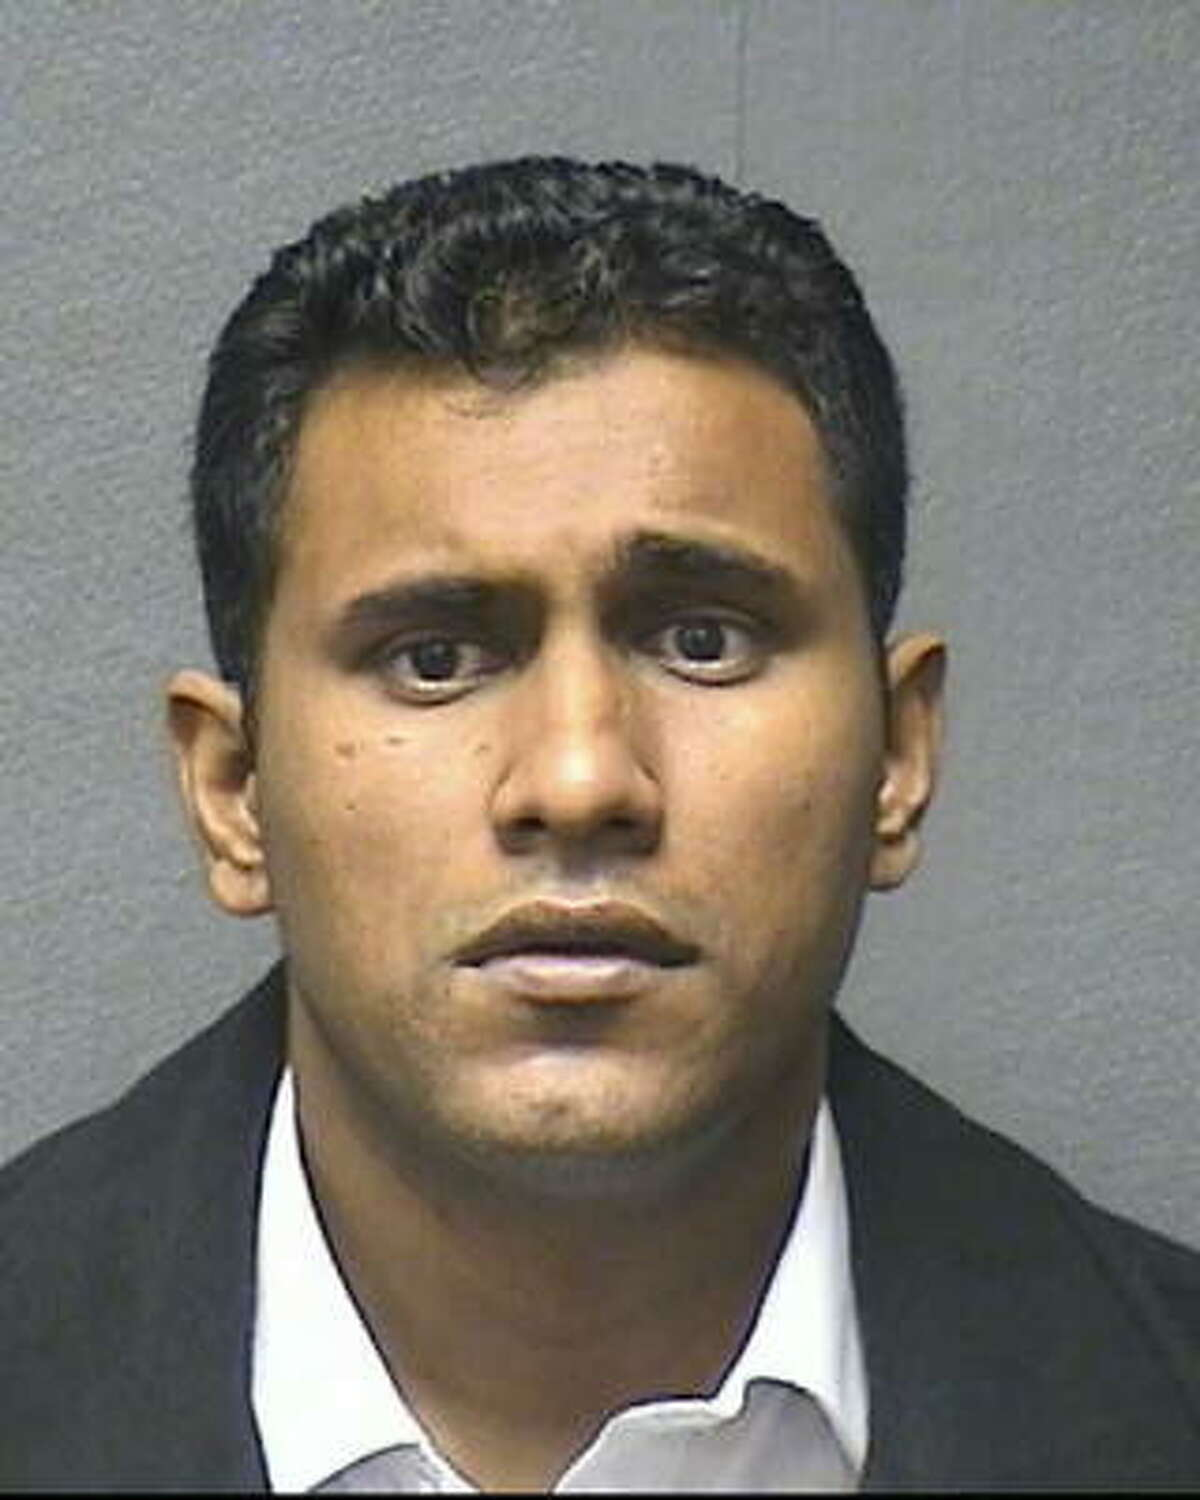 Officer Abraham Joseph was indicted on Thursday.